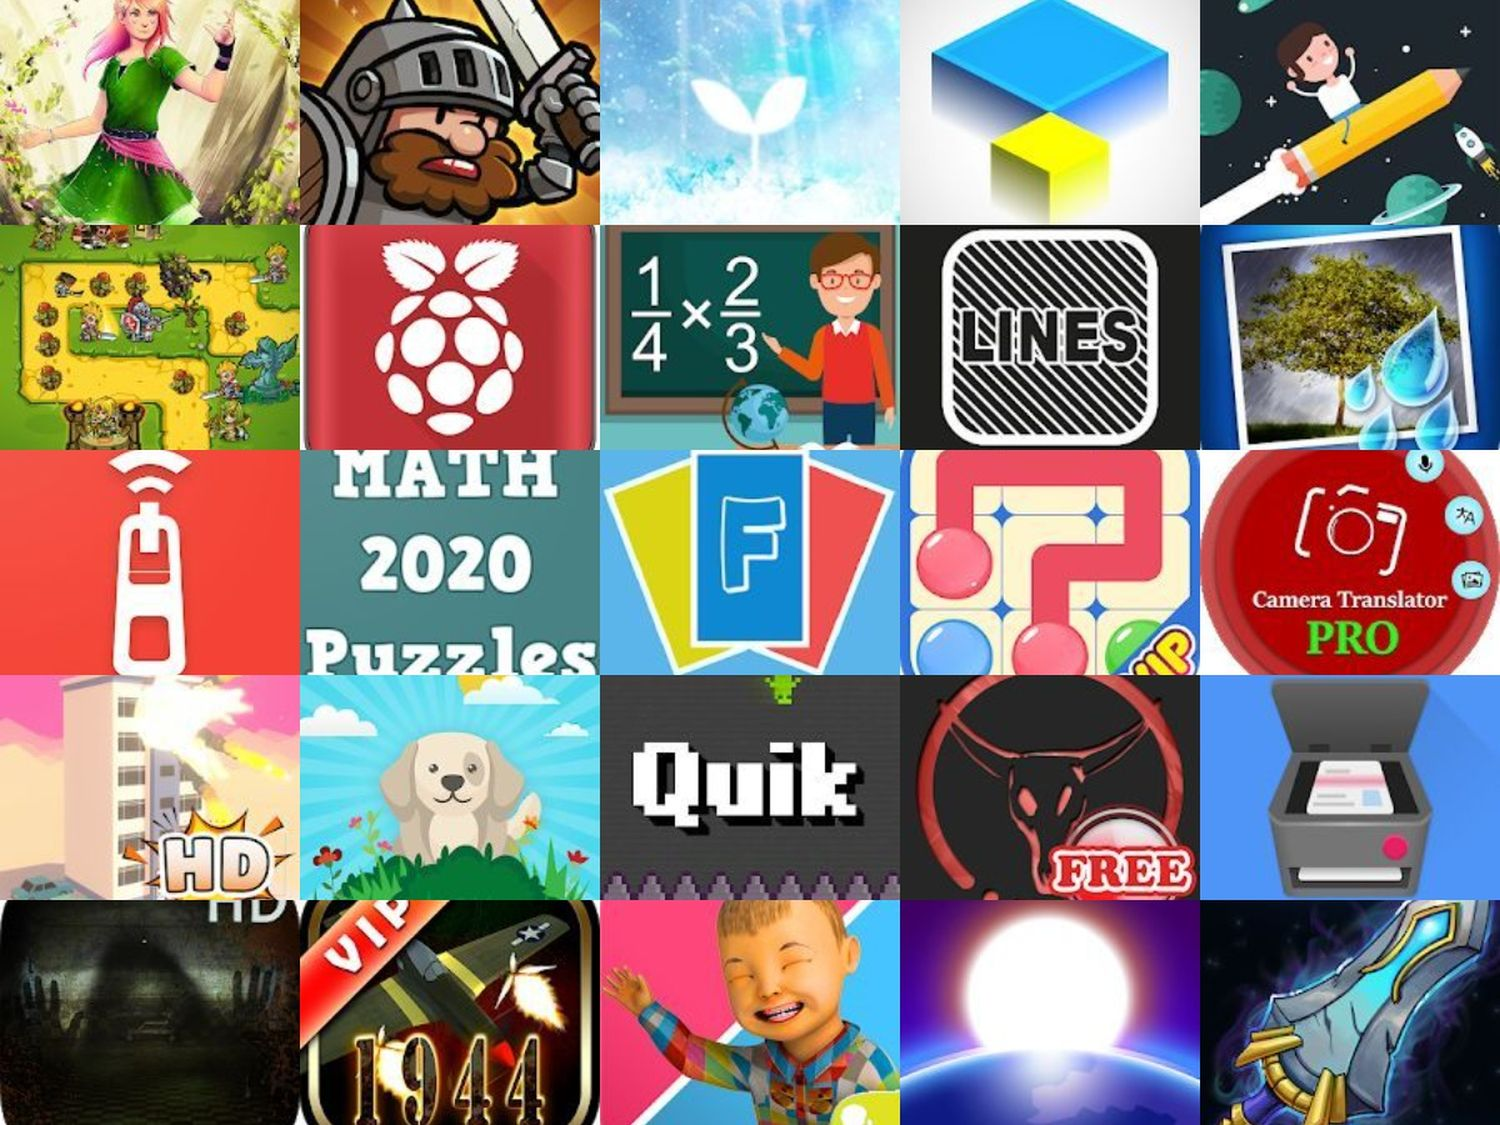 apps 17.12.2020